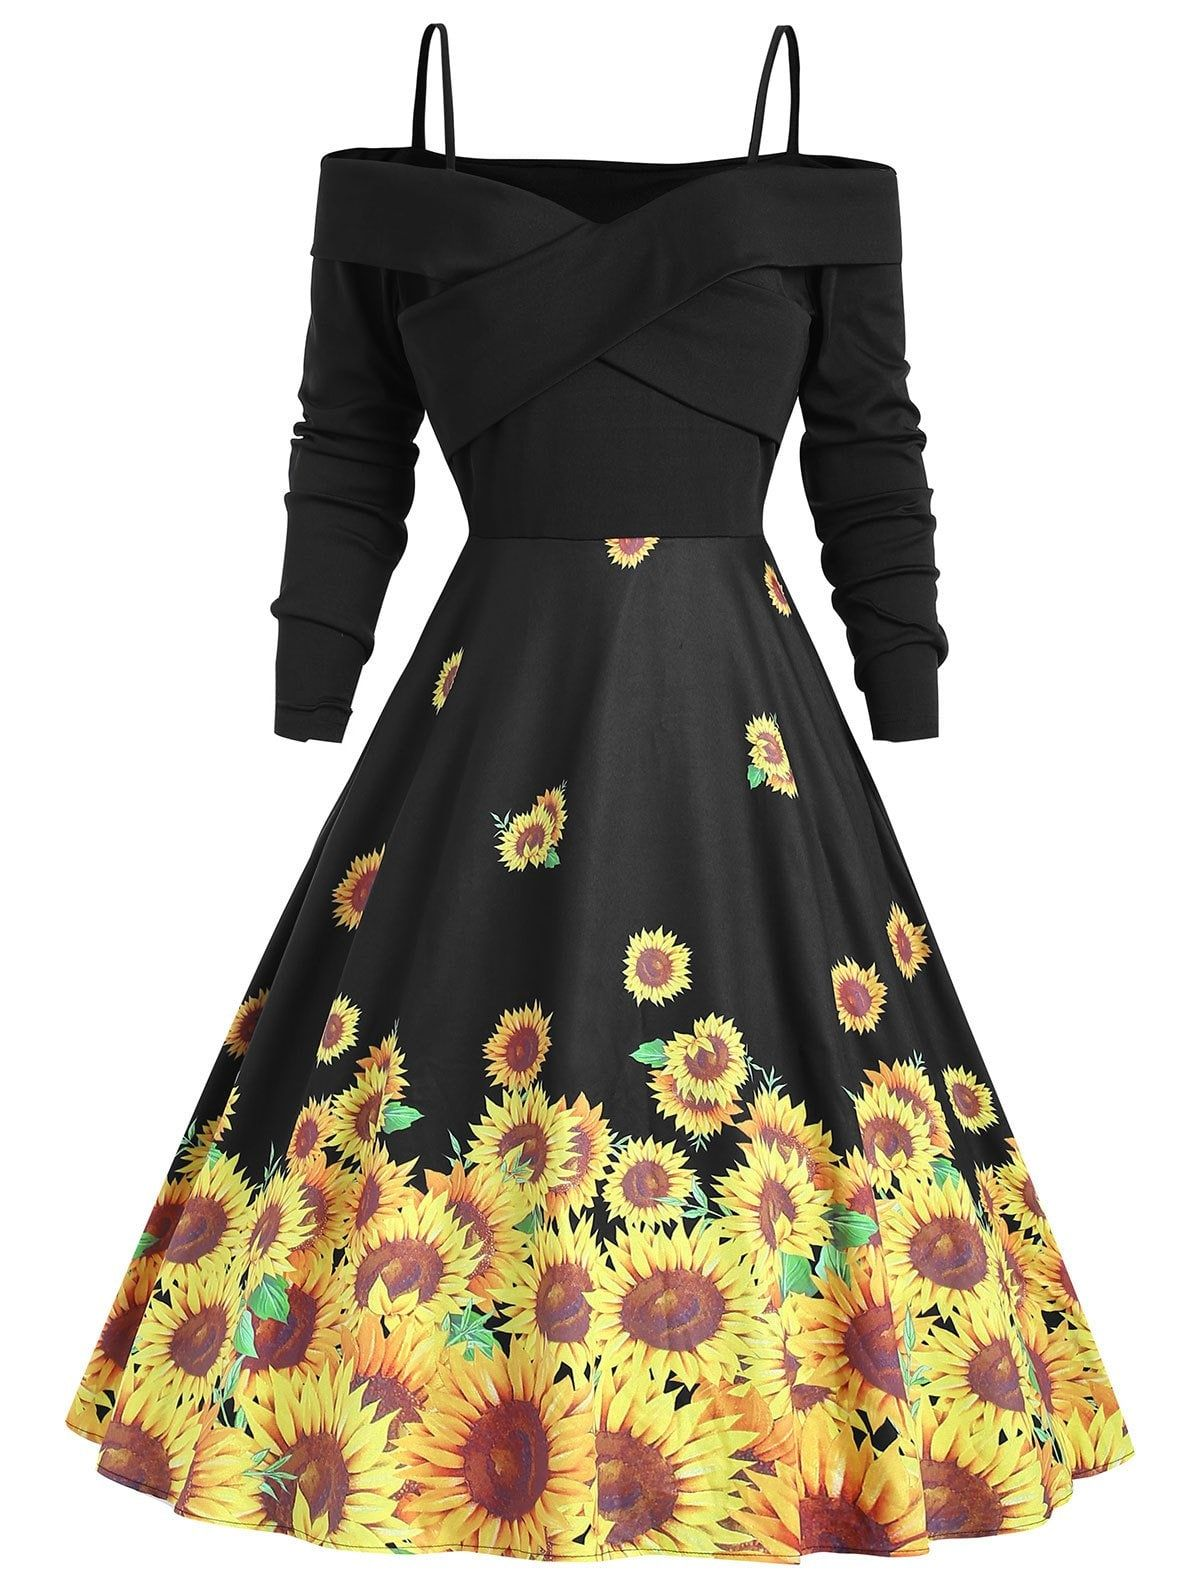 Cheap Fashion Online Retailer Providing Customers Trendy And Stylish Clothing Including Different Cat Vintage Dresses Vintage Swing Dress Vintage Dresses Cheap [ 1596 x 1200 Pixel ]